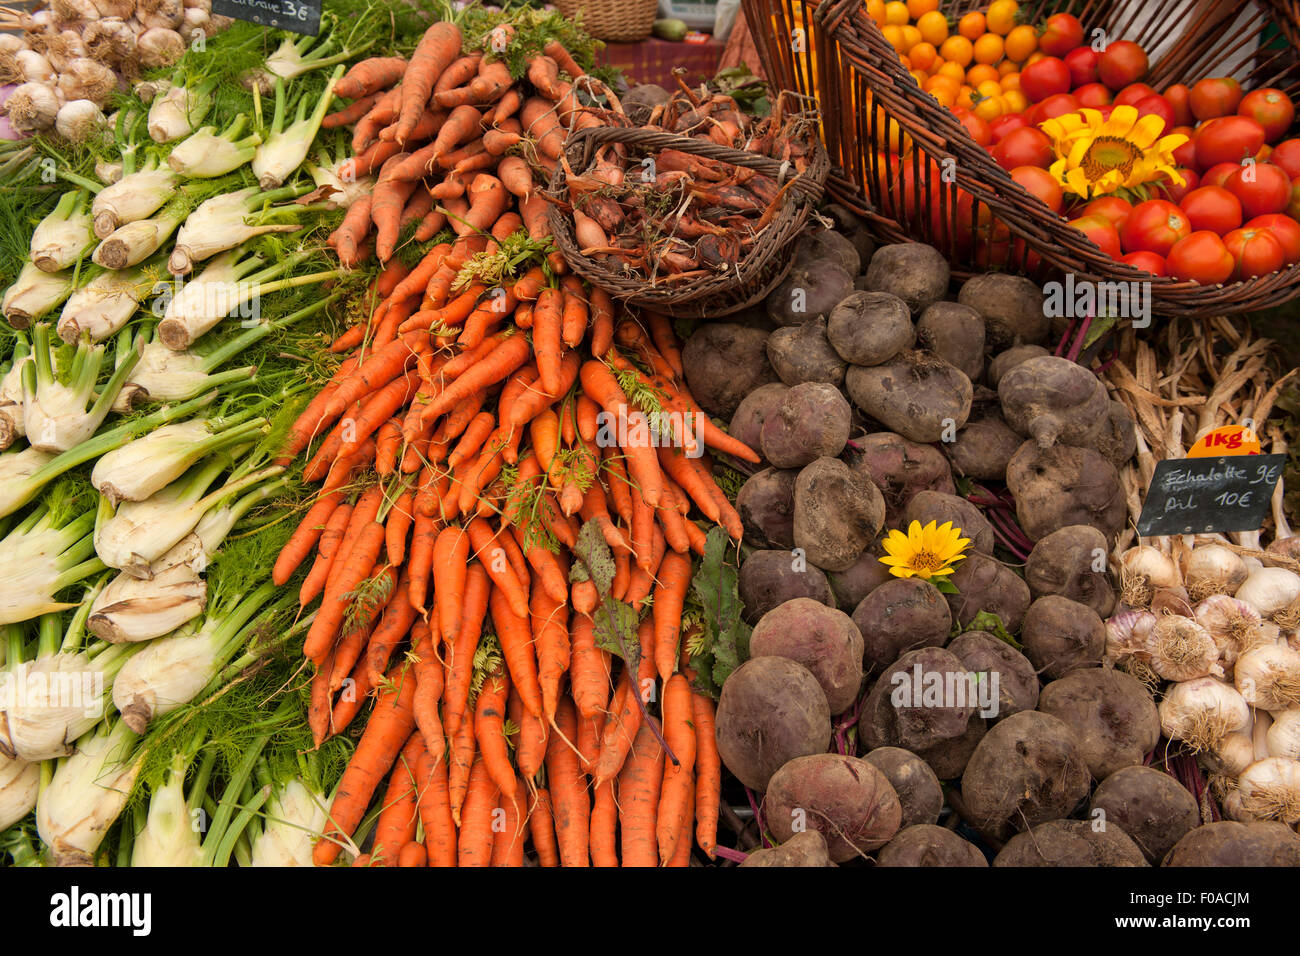 Traditional French market stall with vegetables on display, Issigeac, France - Stock Image